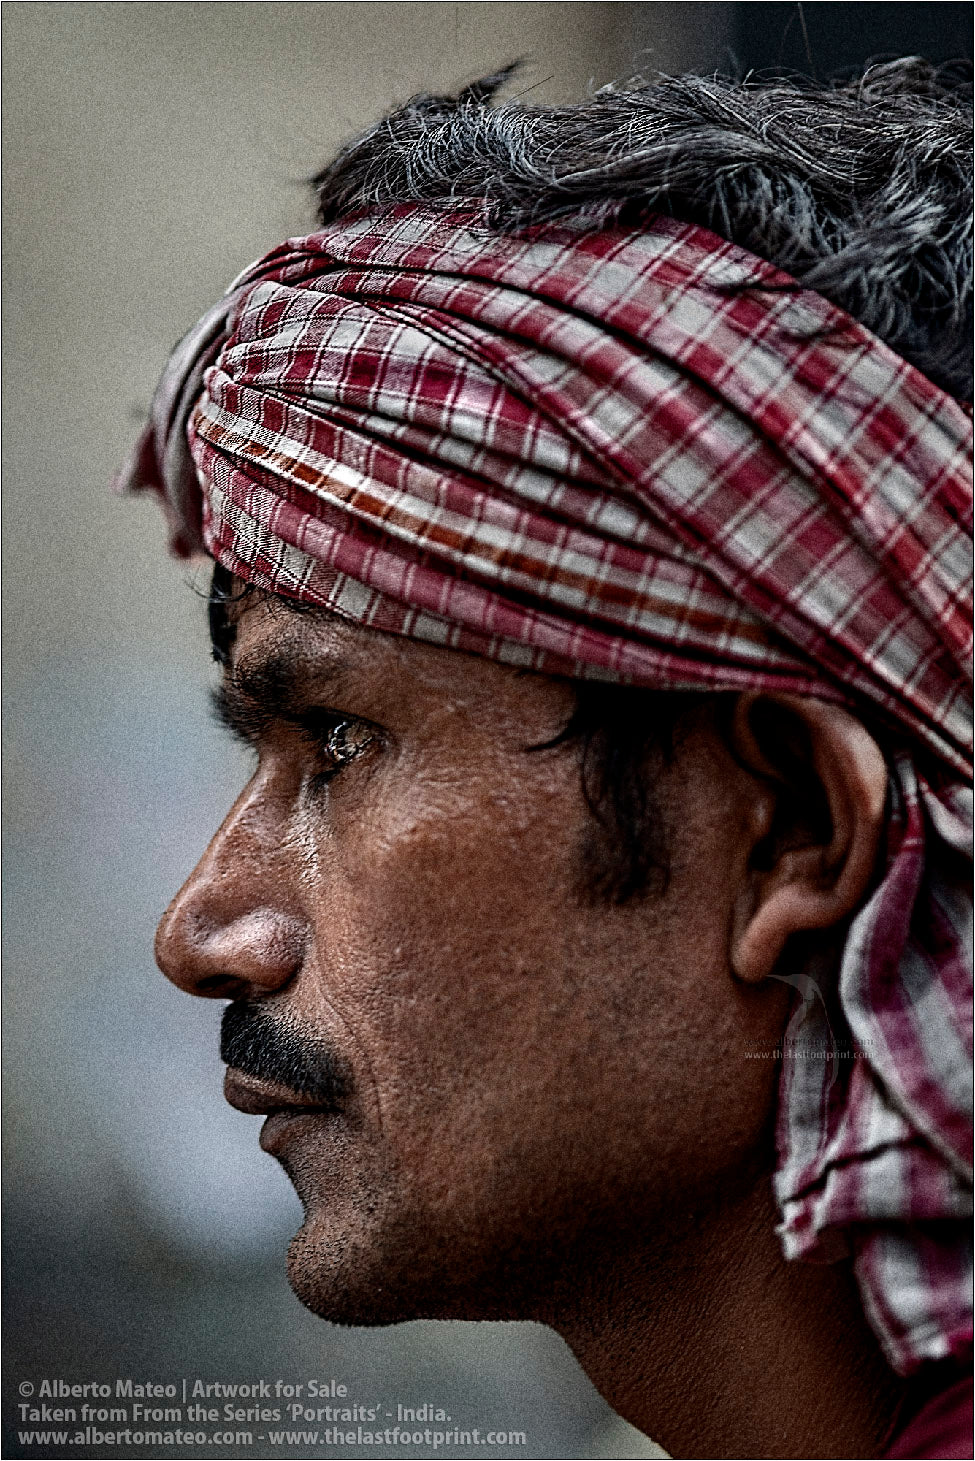 Profile portrait of Porter in Bara Bazar streets, Kolkata, India.